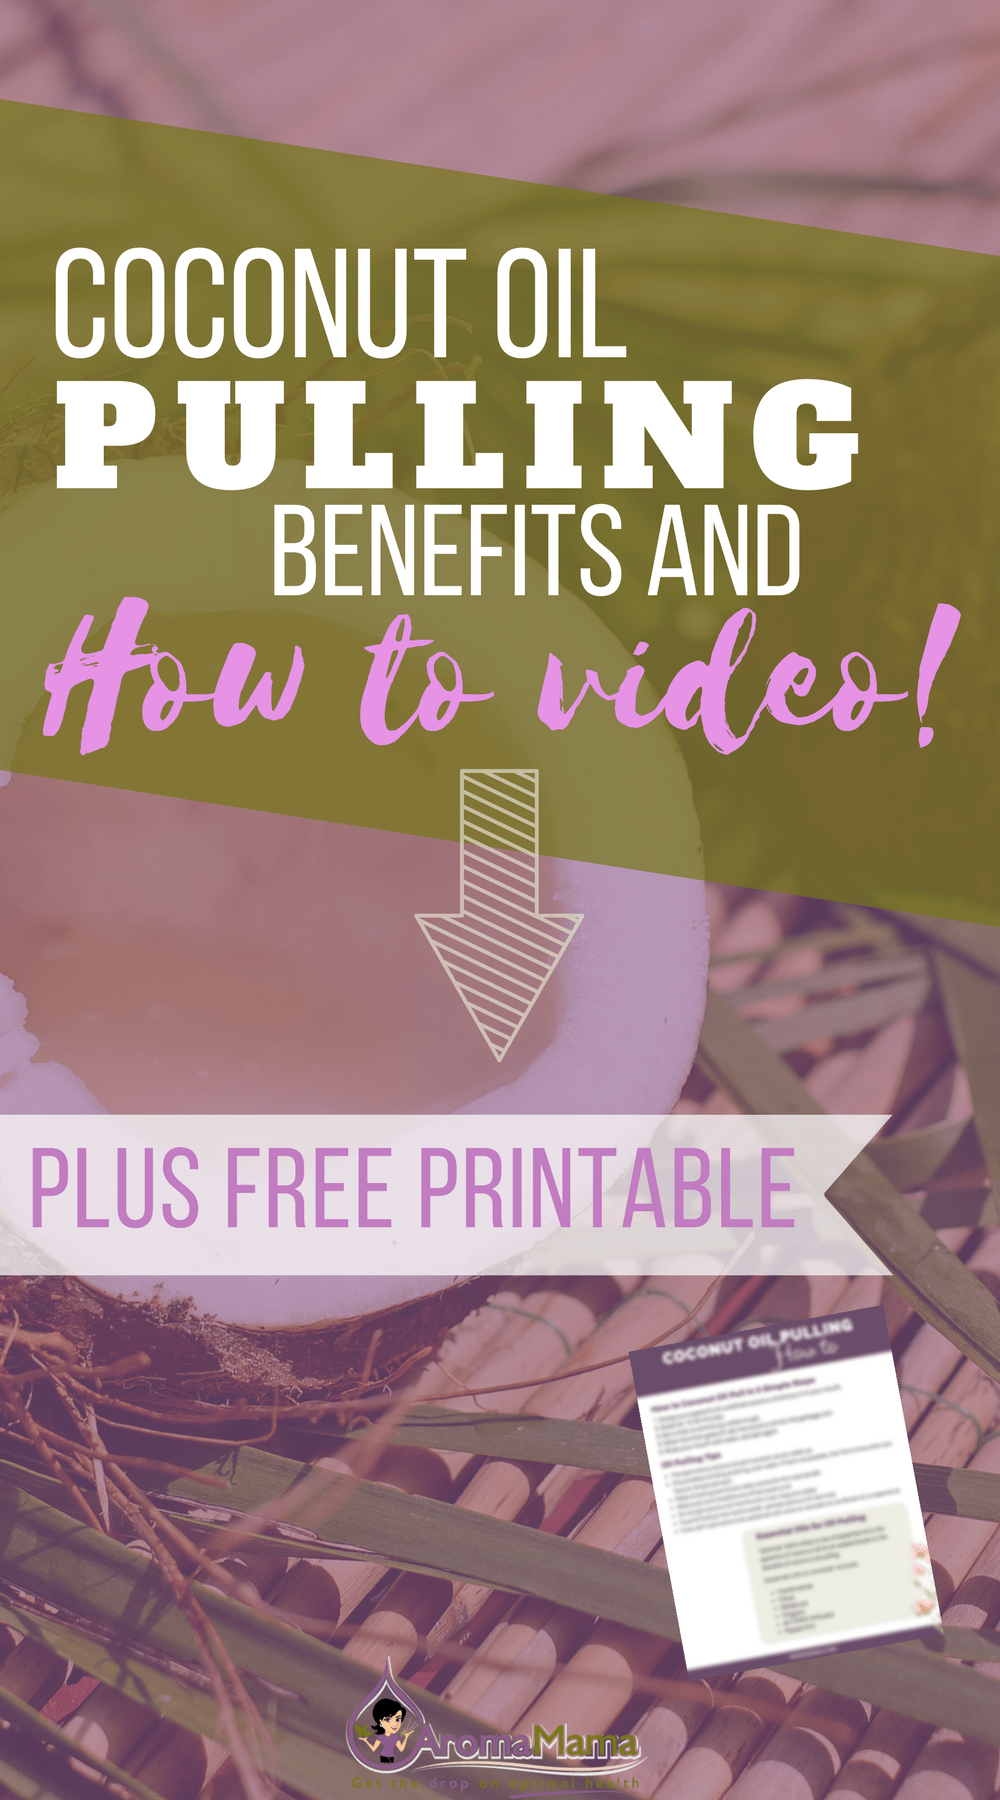 Learn the benefits of coconut oil pulling and watch a video on how to coconut oil pull with essential oils. Plus, get a PDF printable with the five easy steps to coconut oil pulling success.